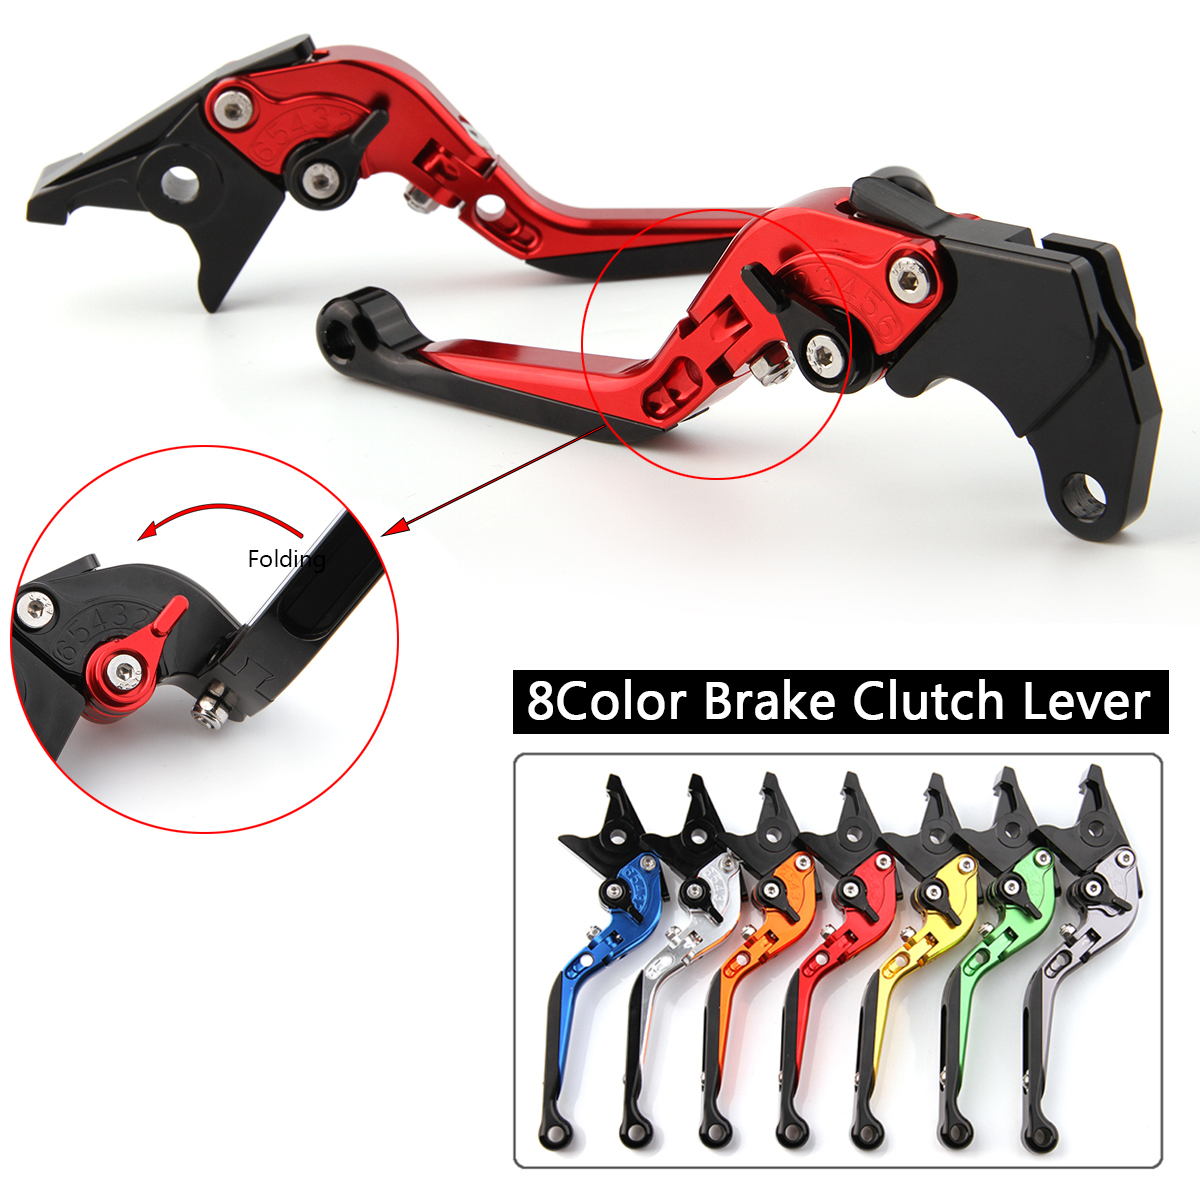 CNC Levers for <font><b>Honda</b></font> CBR900RR CB599 CB600 <font><b>Hornet</b></font> CBR600 CB919 NC700 Motorcycle Adjustable Folding Extendable Brake Clutch Levers image